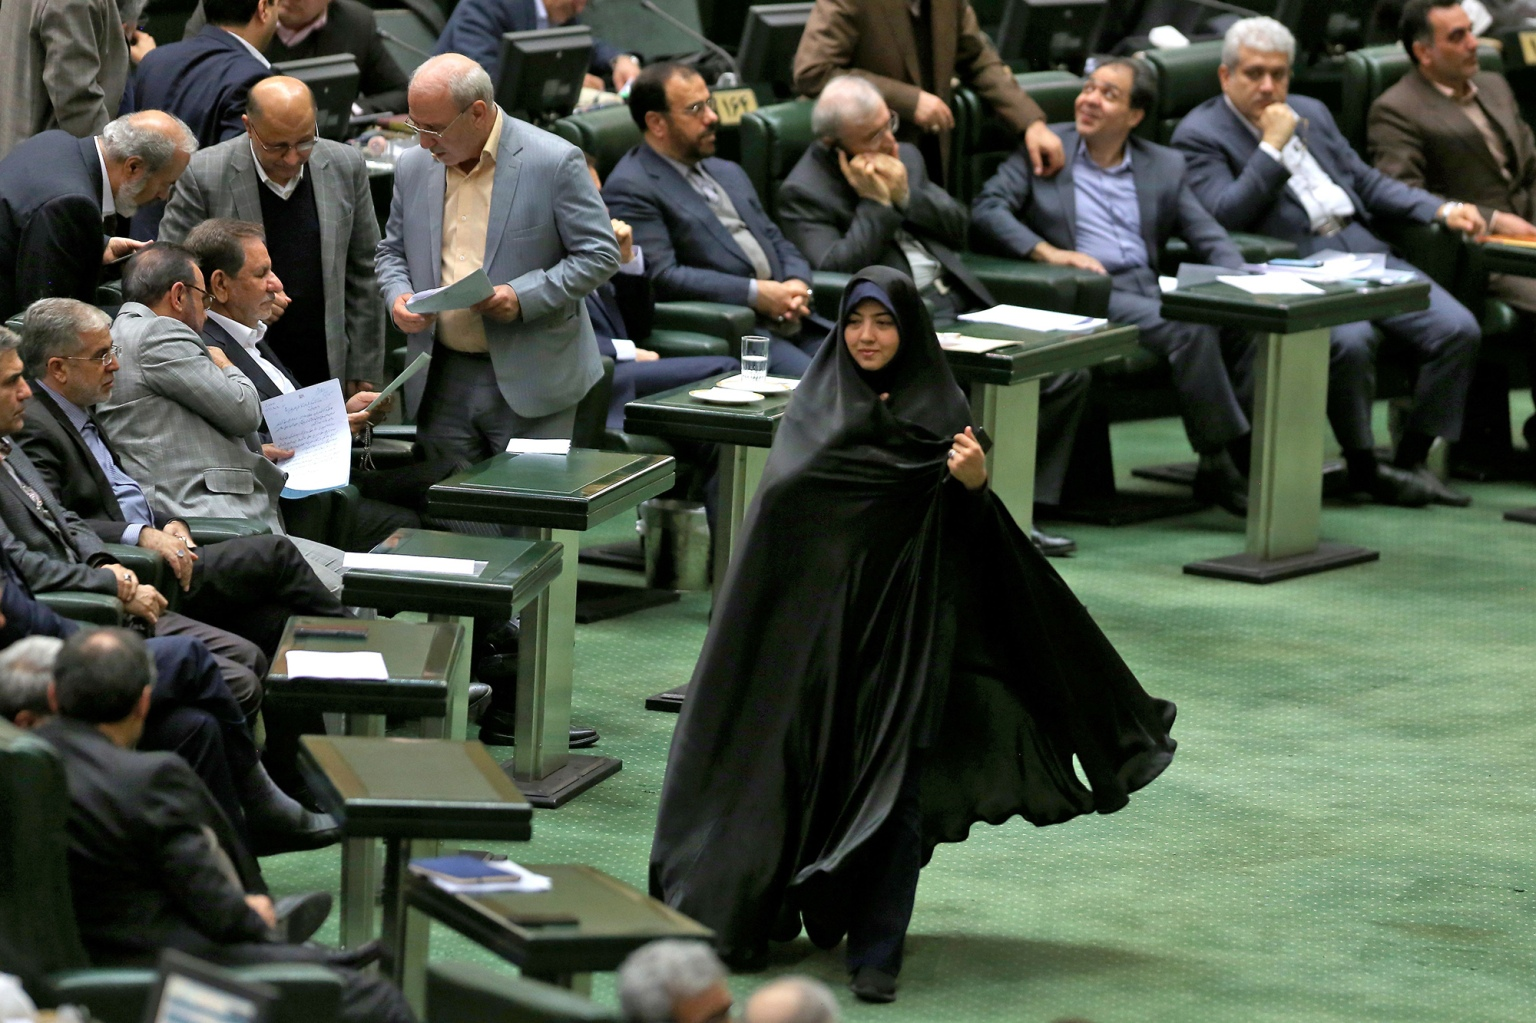 An Iranian lawmaker walks through a parliament session in Tehran on Feb. 4. (Atta Kenare/AFP/Getty Images)